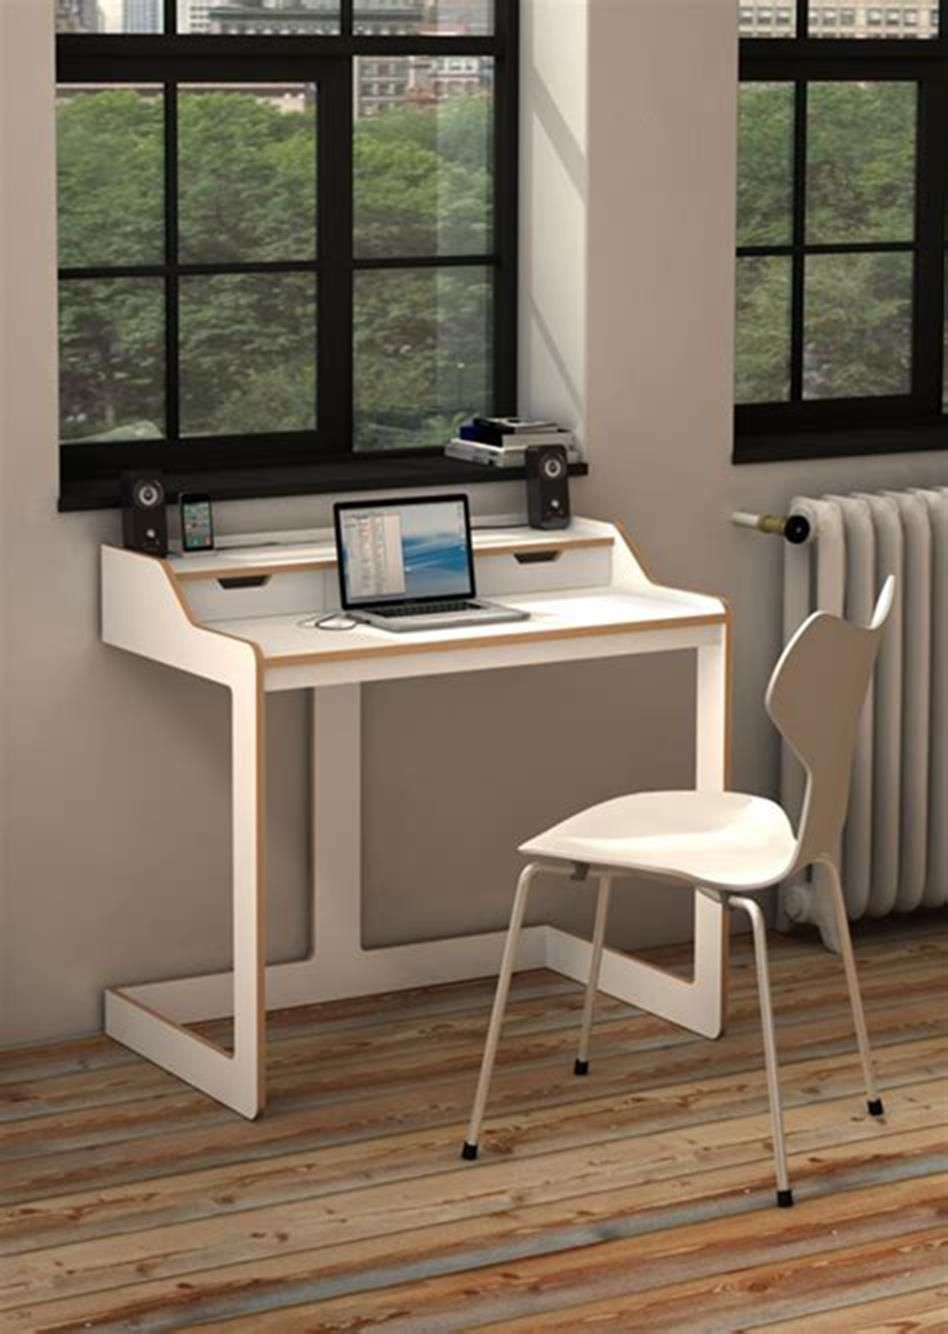 50 Amazing Ideas Furniture for Small Spaces Youll Love 21 | Desks